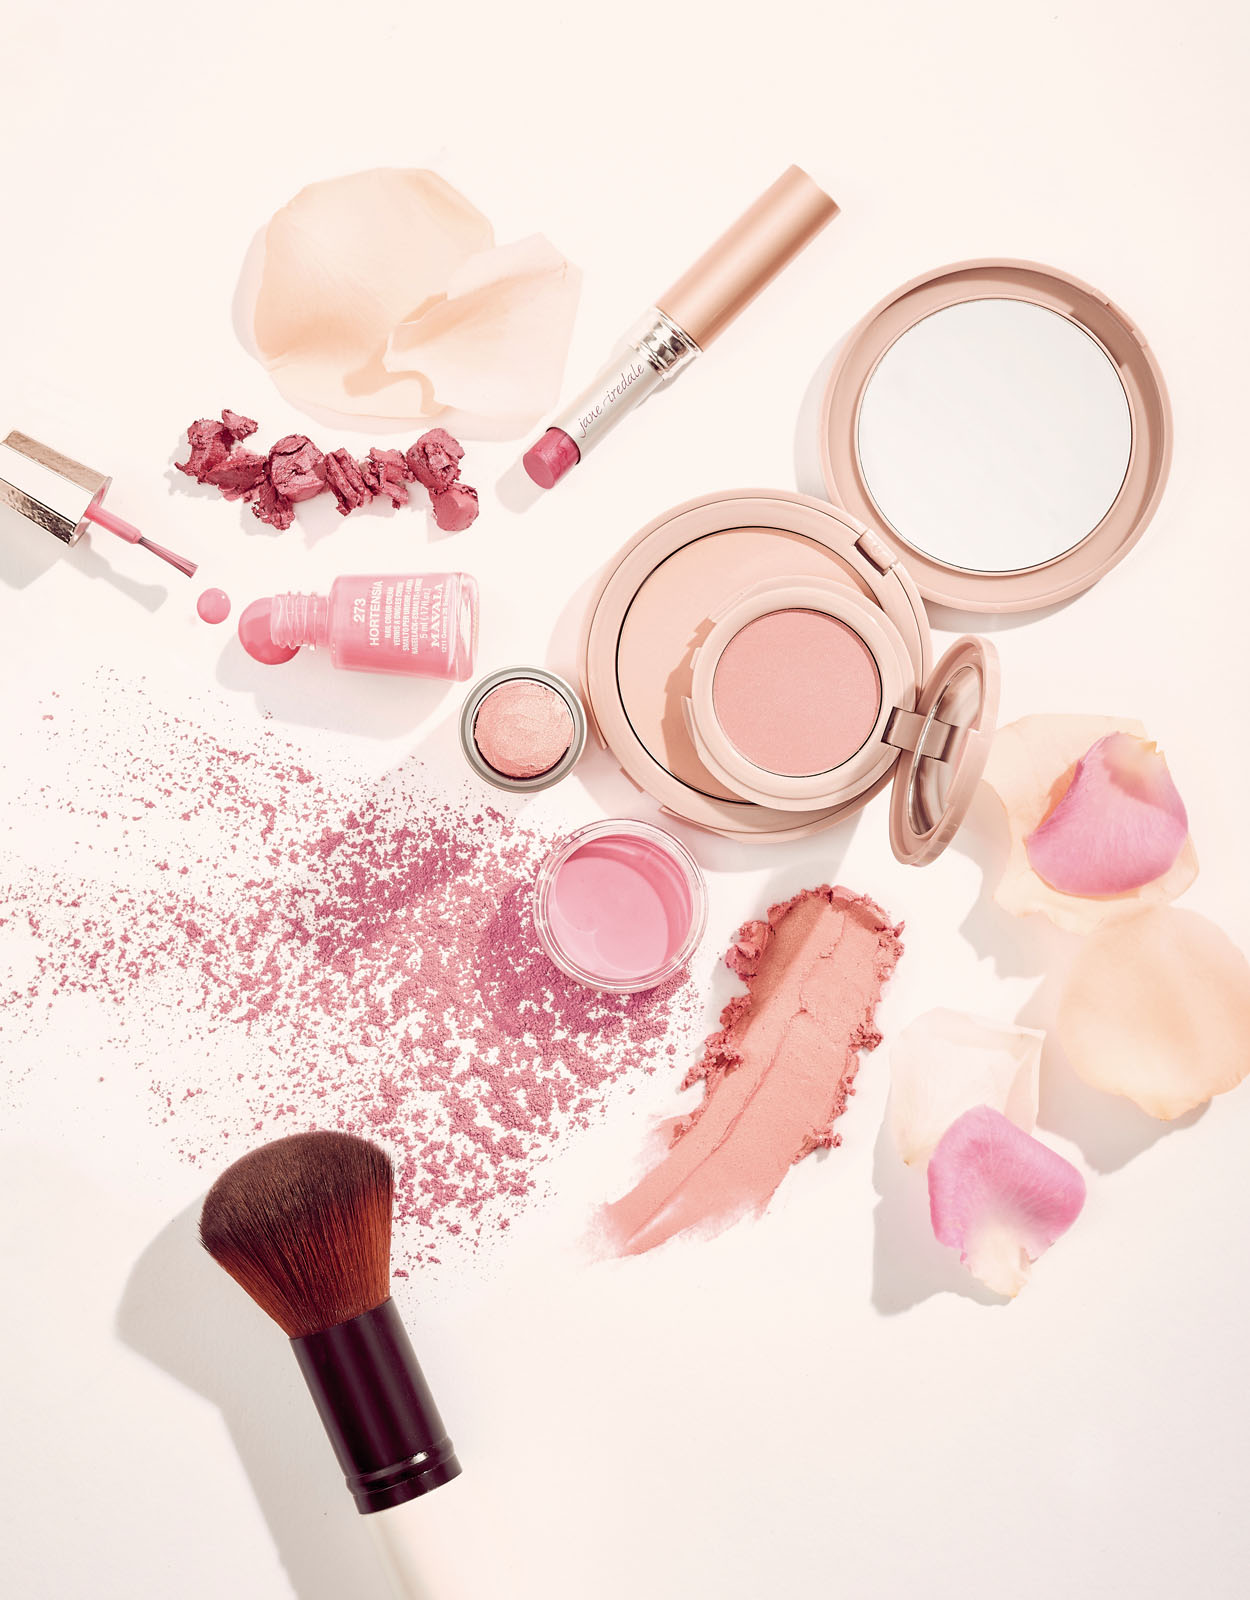 Beauty products on a pink background